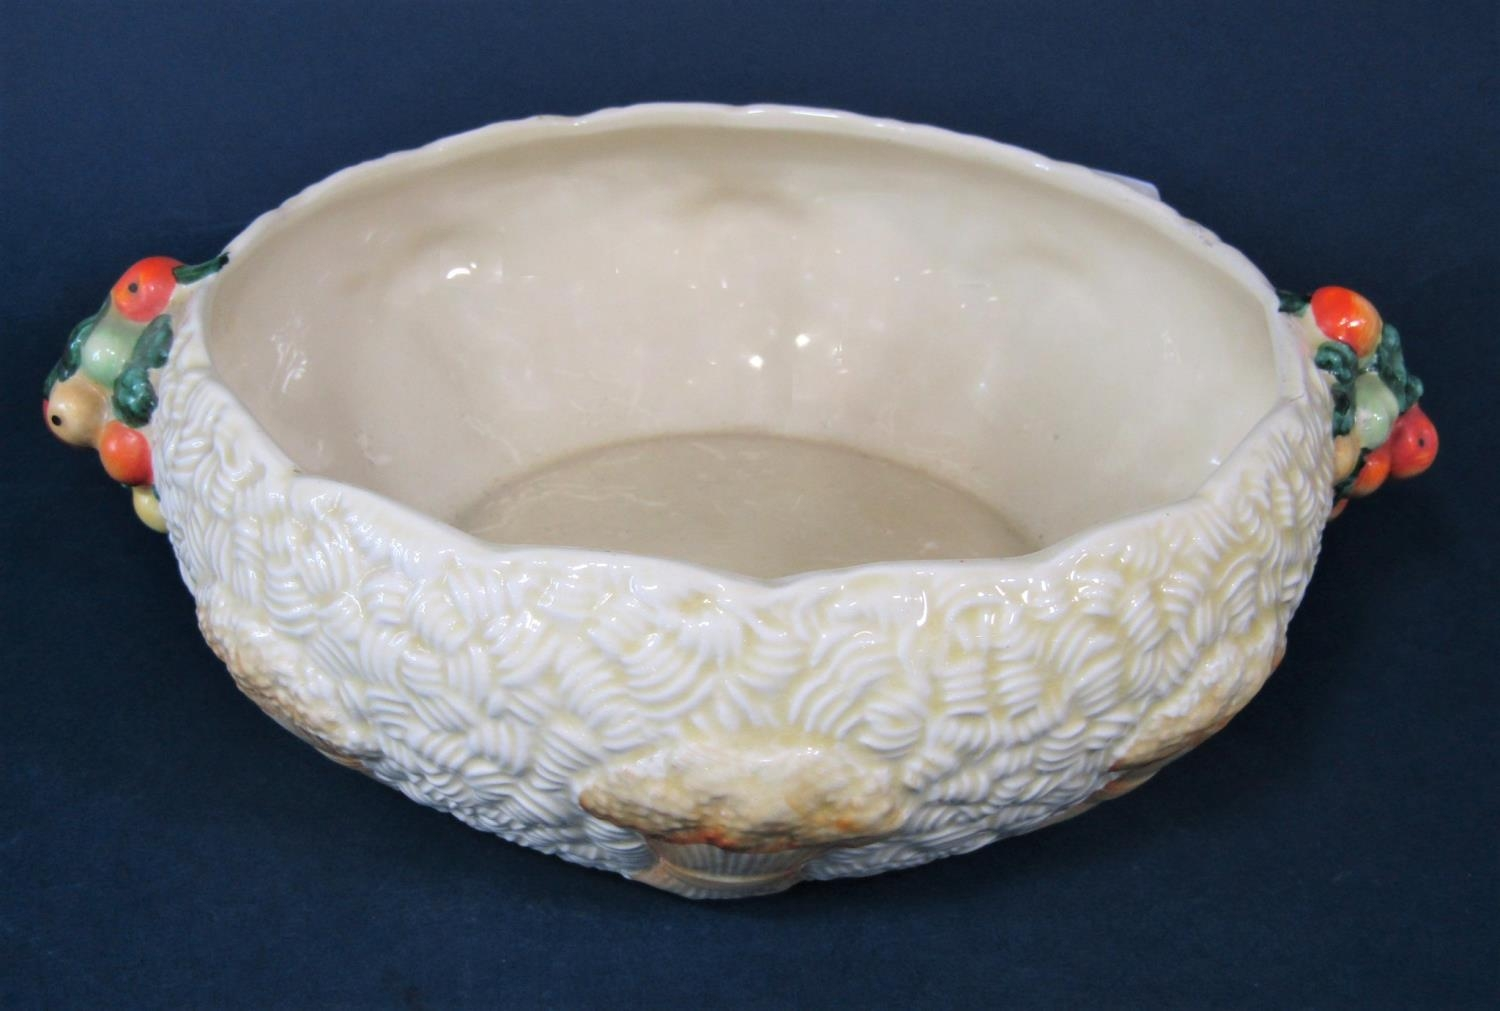 A Clarice Cliff relief moulded bowl in the Celtic Harvest pattern with moulded fruit handles and